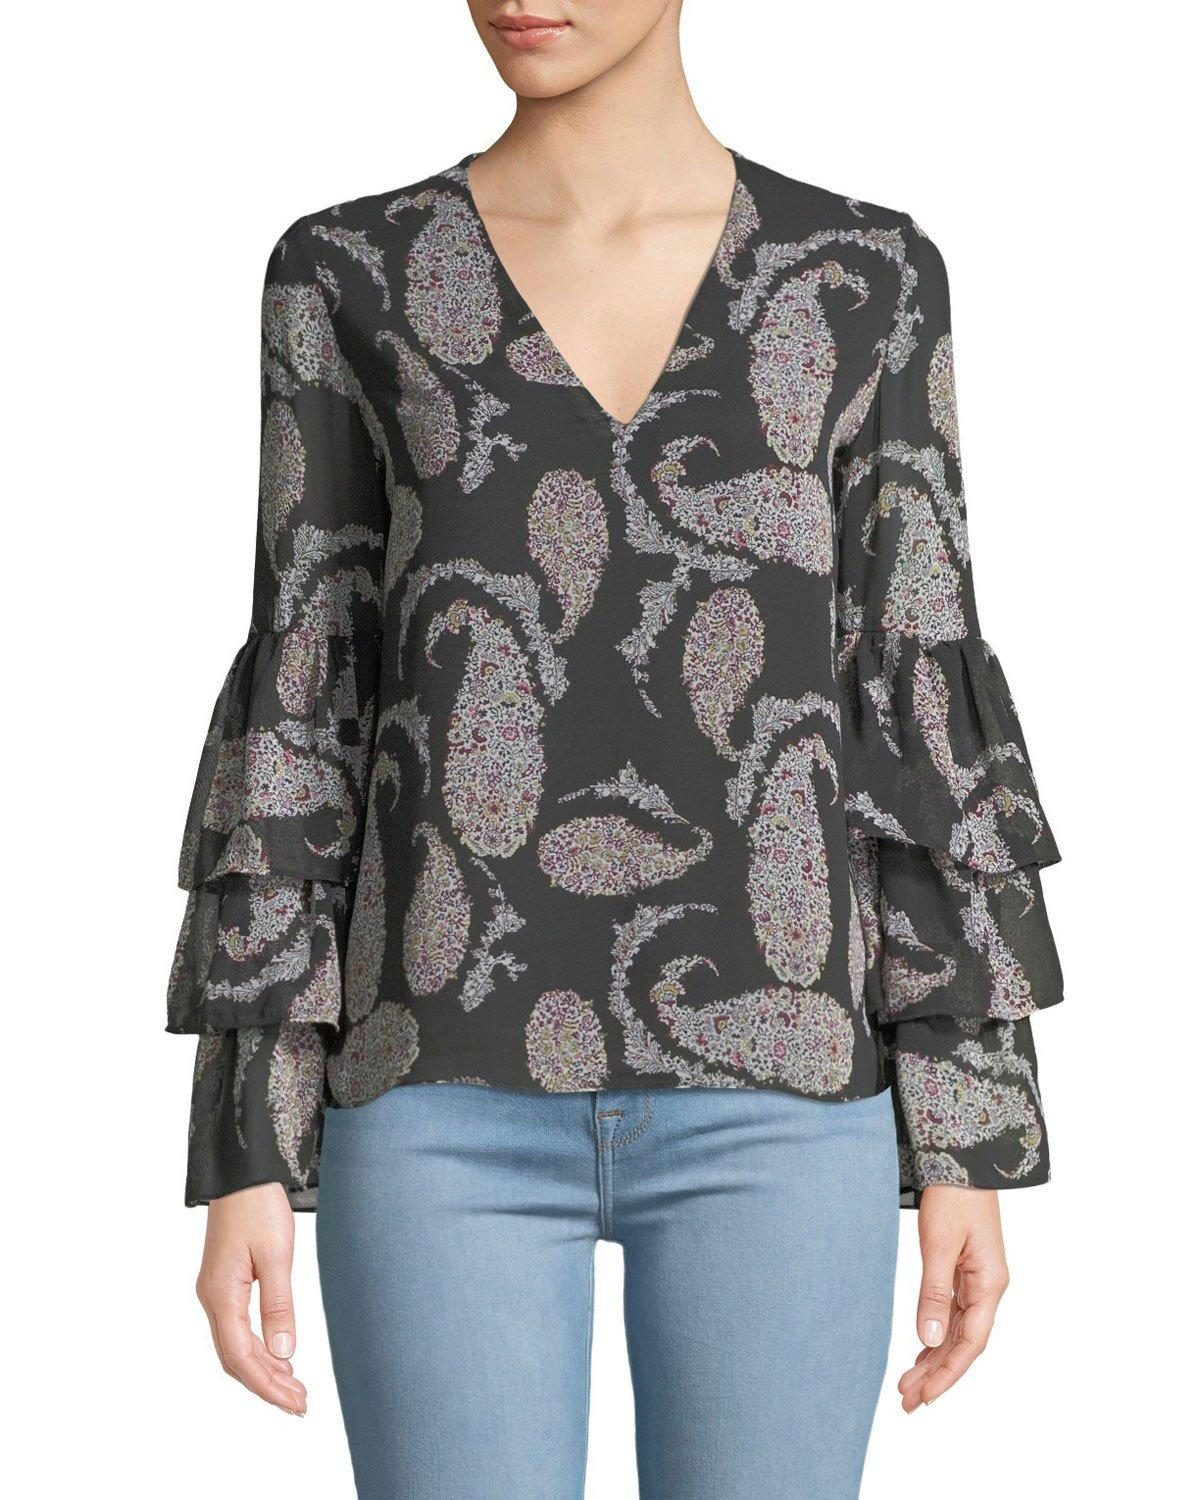 7a08a32951e33 Bailey44 Top Billing Floral Paisley-Print Bell-Sleeve Blouse In Gray ...